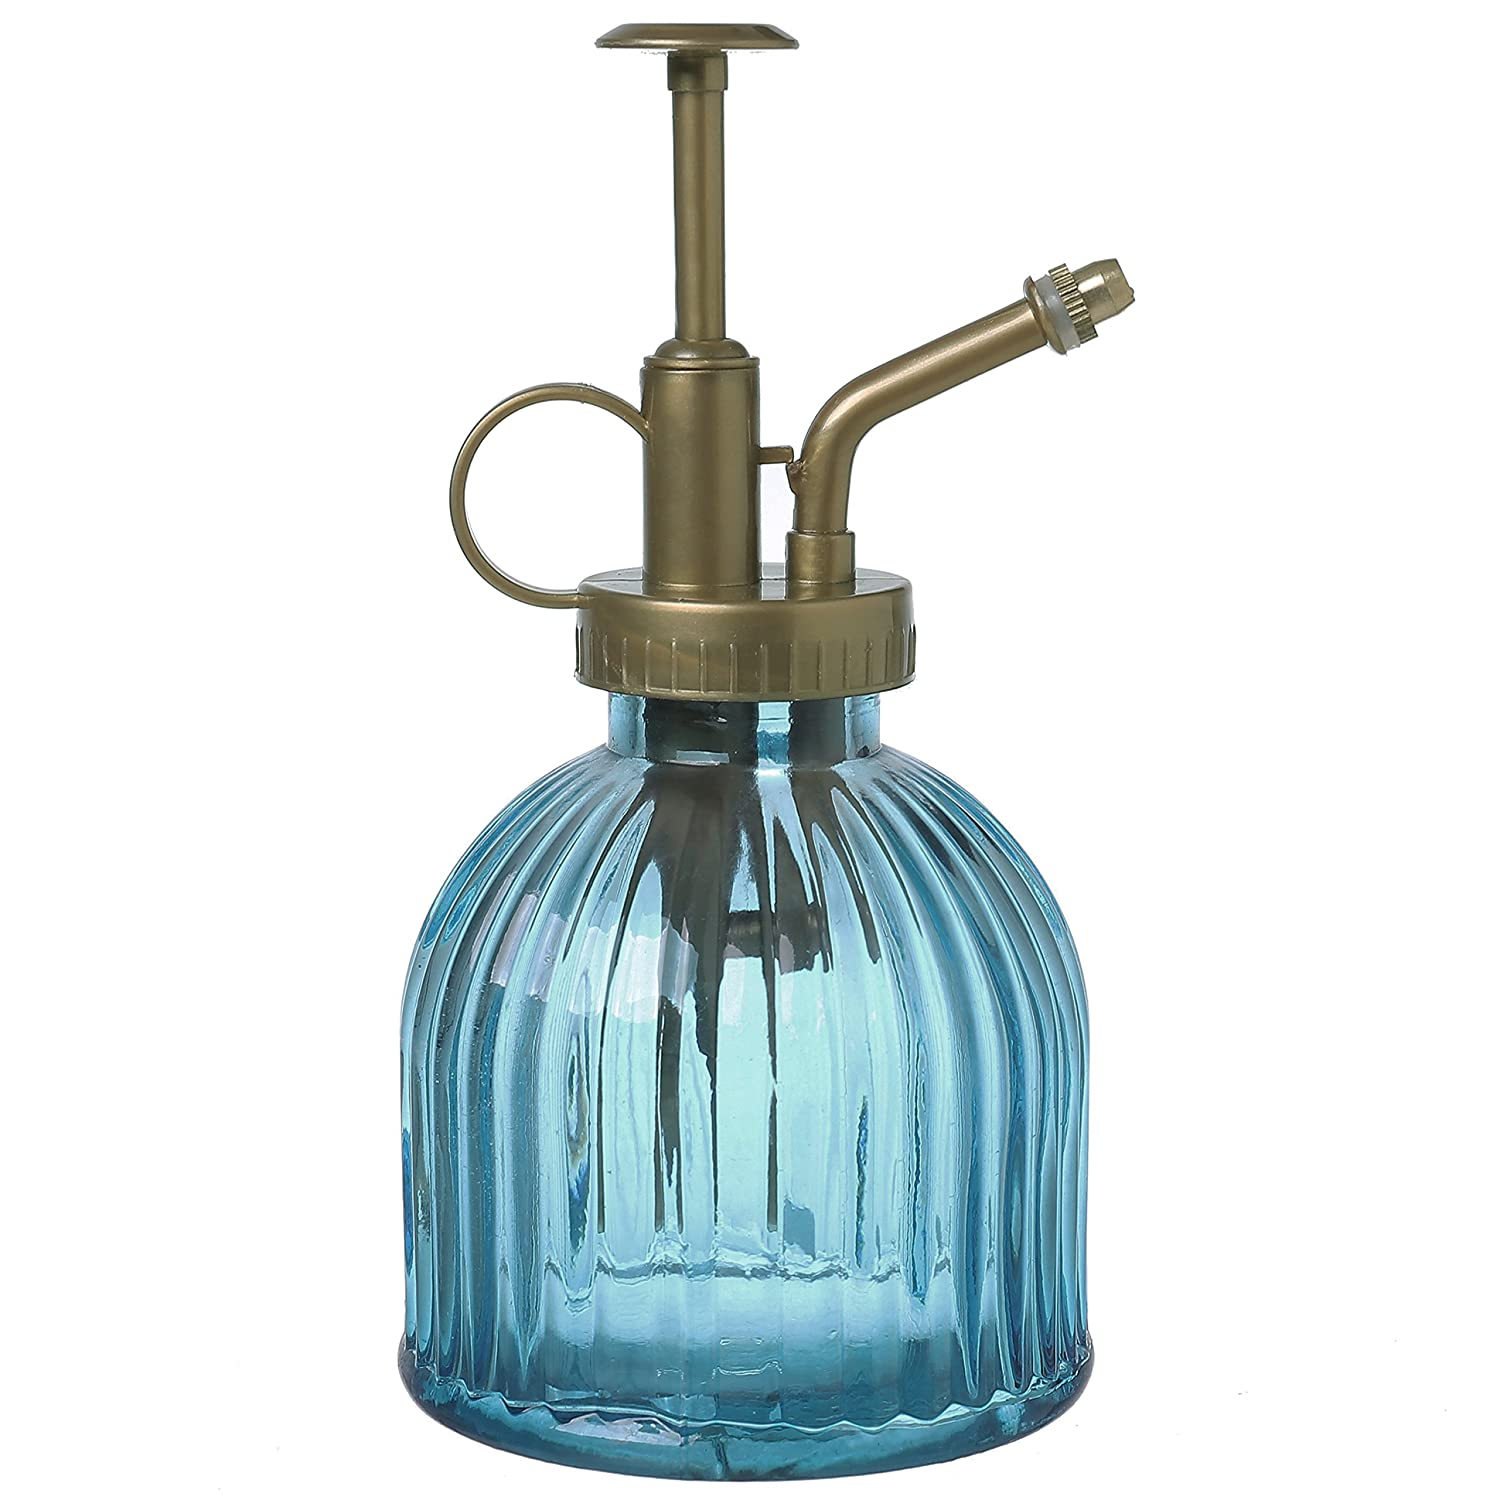 MyGift Vintage Style Blue Glass Water Spray Bottle/Decorative Plant Mister  with Top Pump